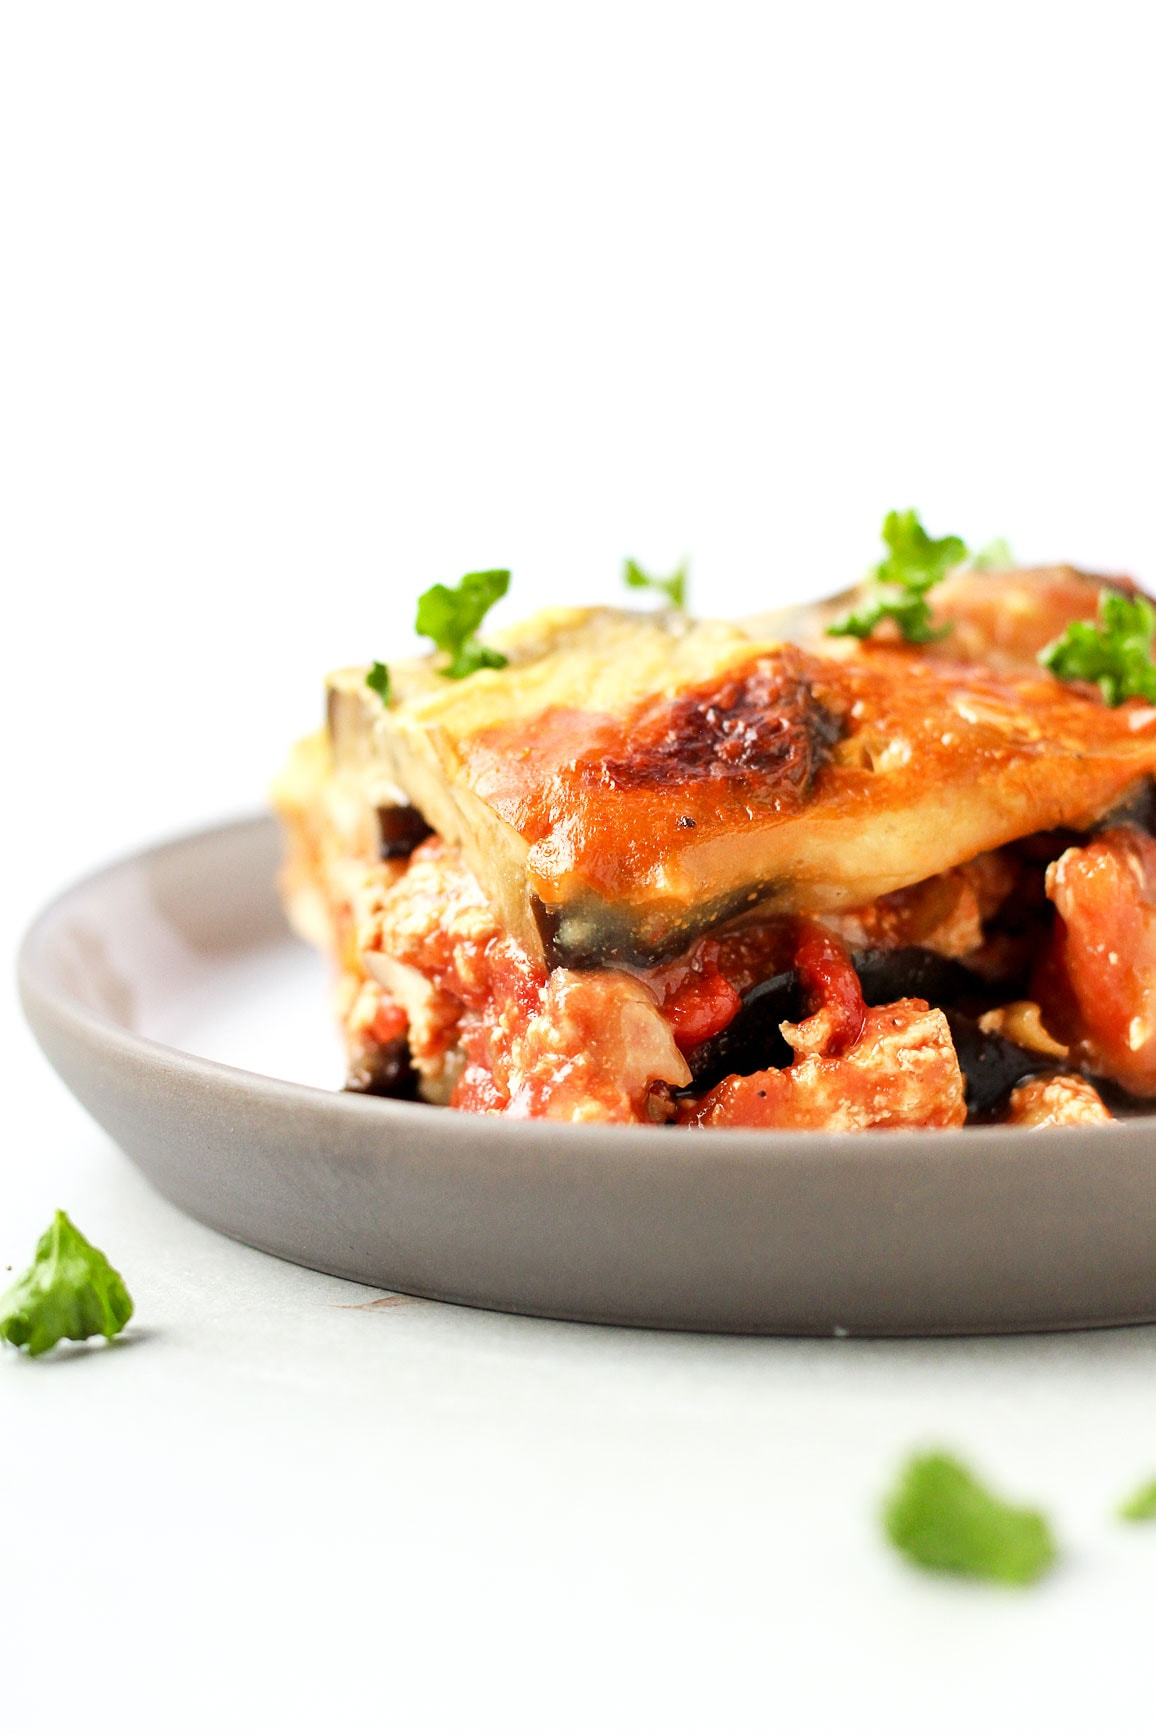 Vegan Smoky Moussaka